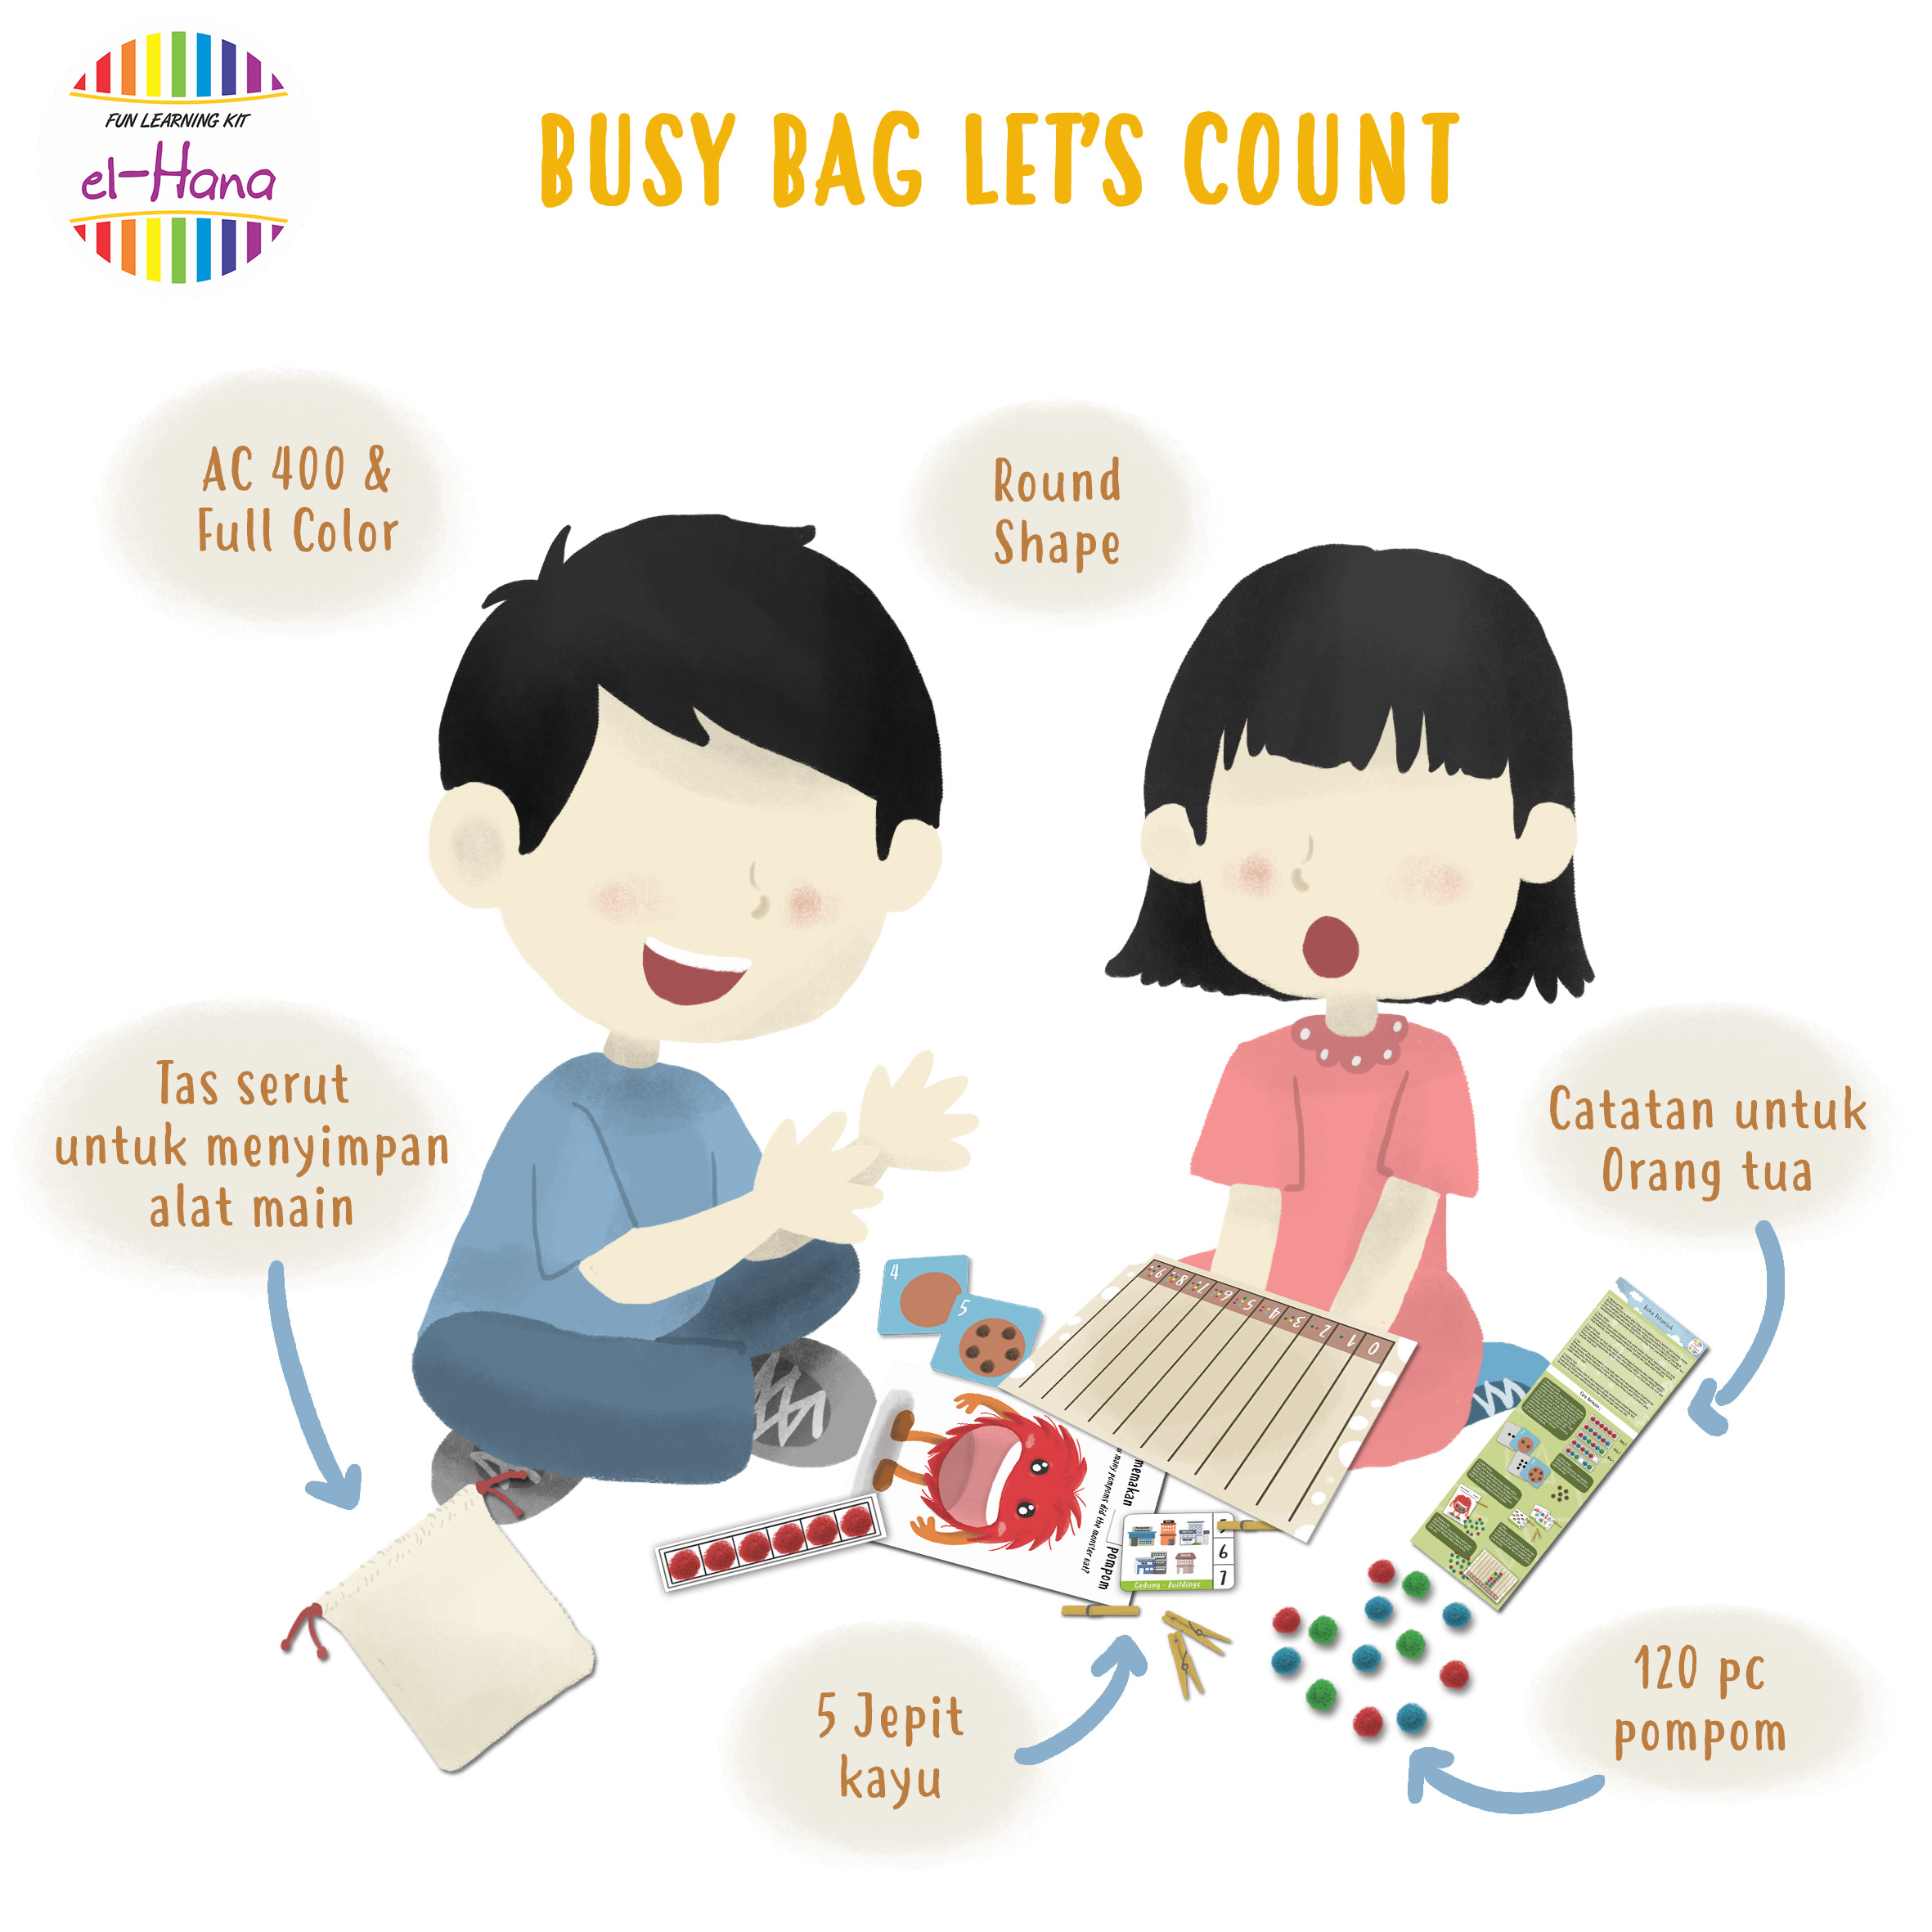 REVIEW BELAJAR BERHITUNG SERU BERSAMA BUSY BAG LET S COUNT BY EL HANA